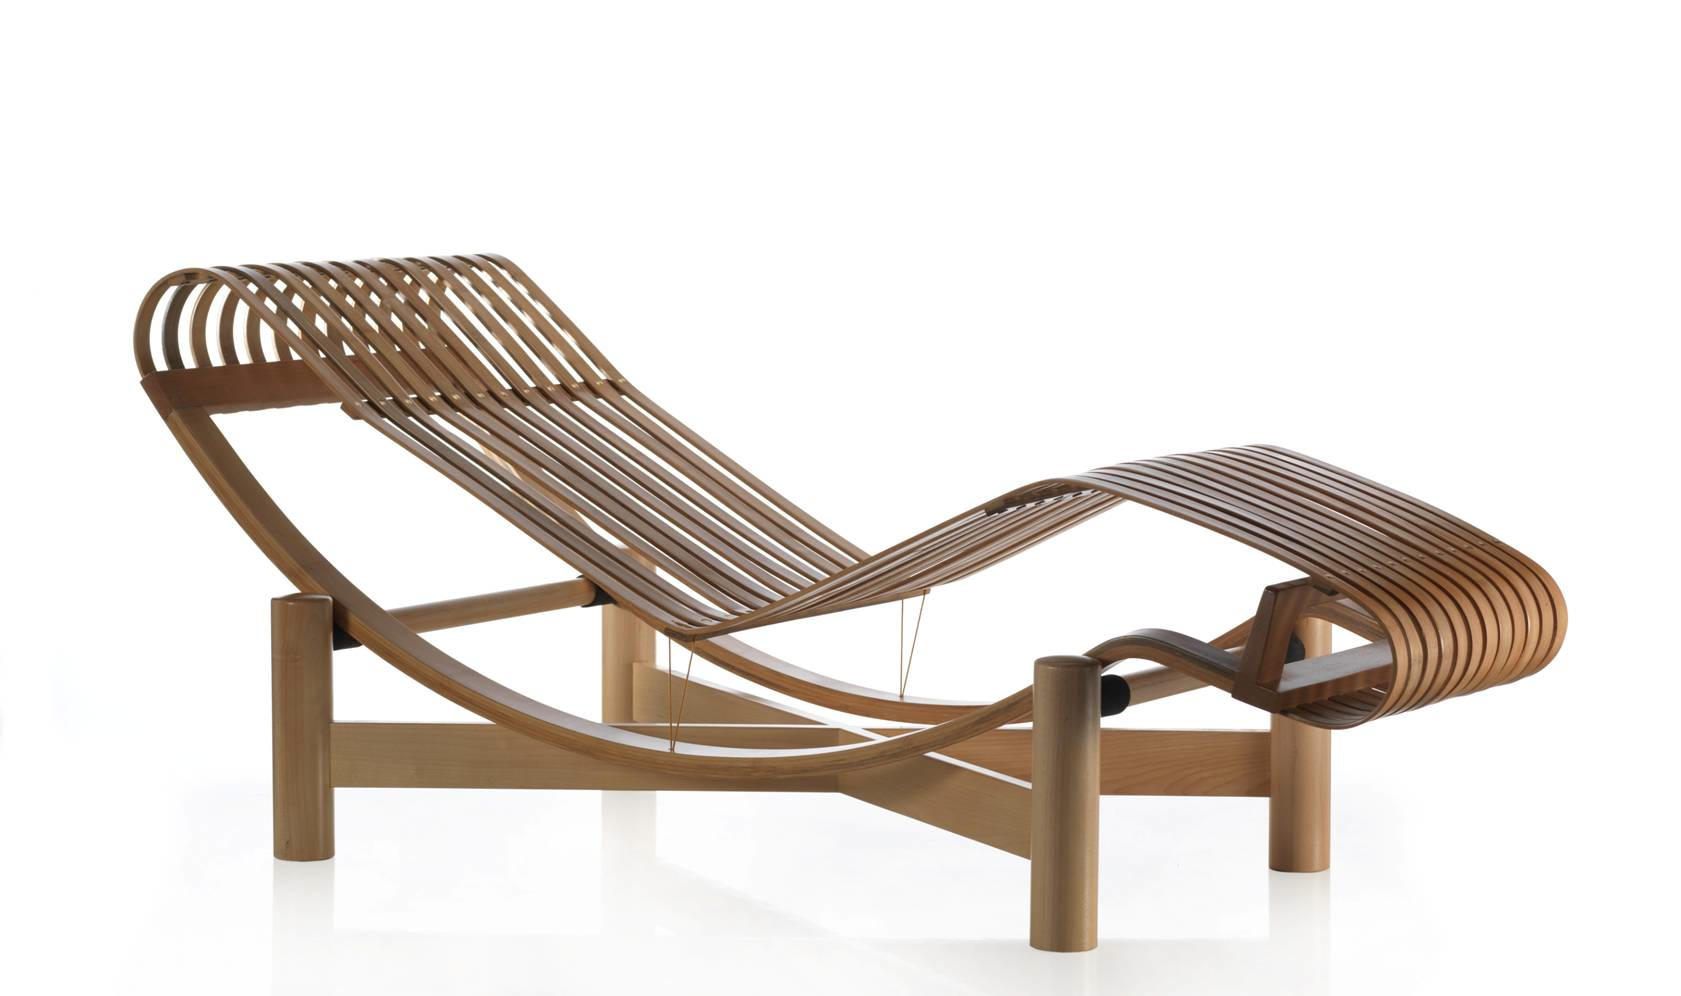 designapplause outdoor tokyo chaise longue charlotte perriand. Black Bedroom Furniture Sets. Home Design Ideas